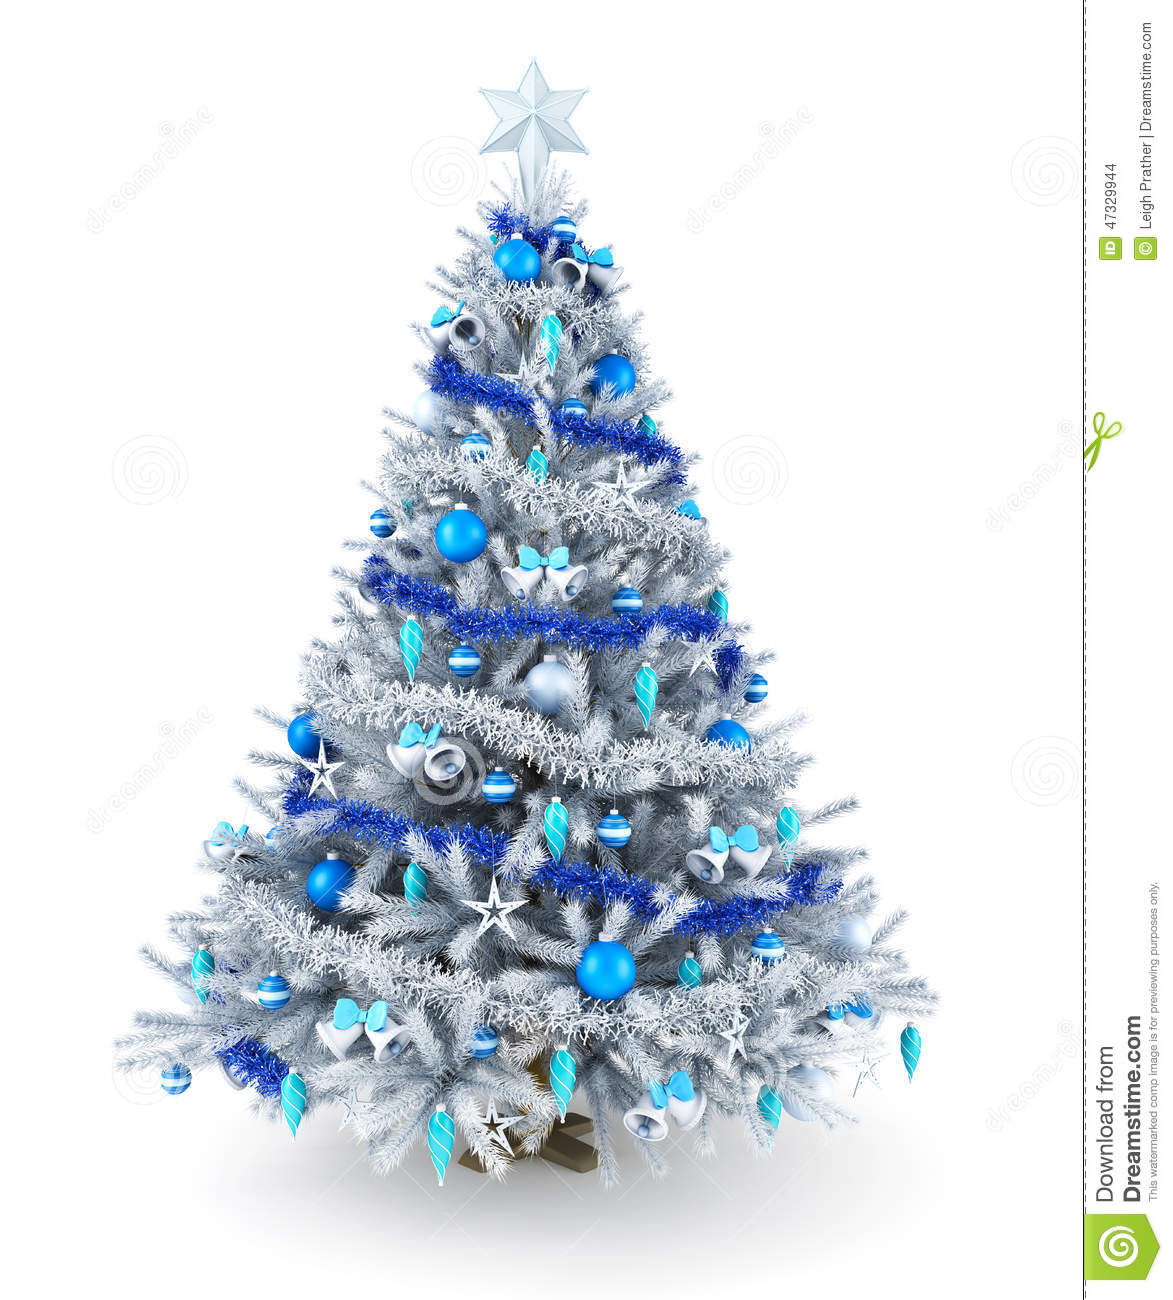 Silver And Blue Christmas Tree Stock Illustration - Image: 47329944